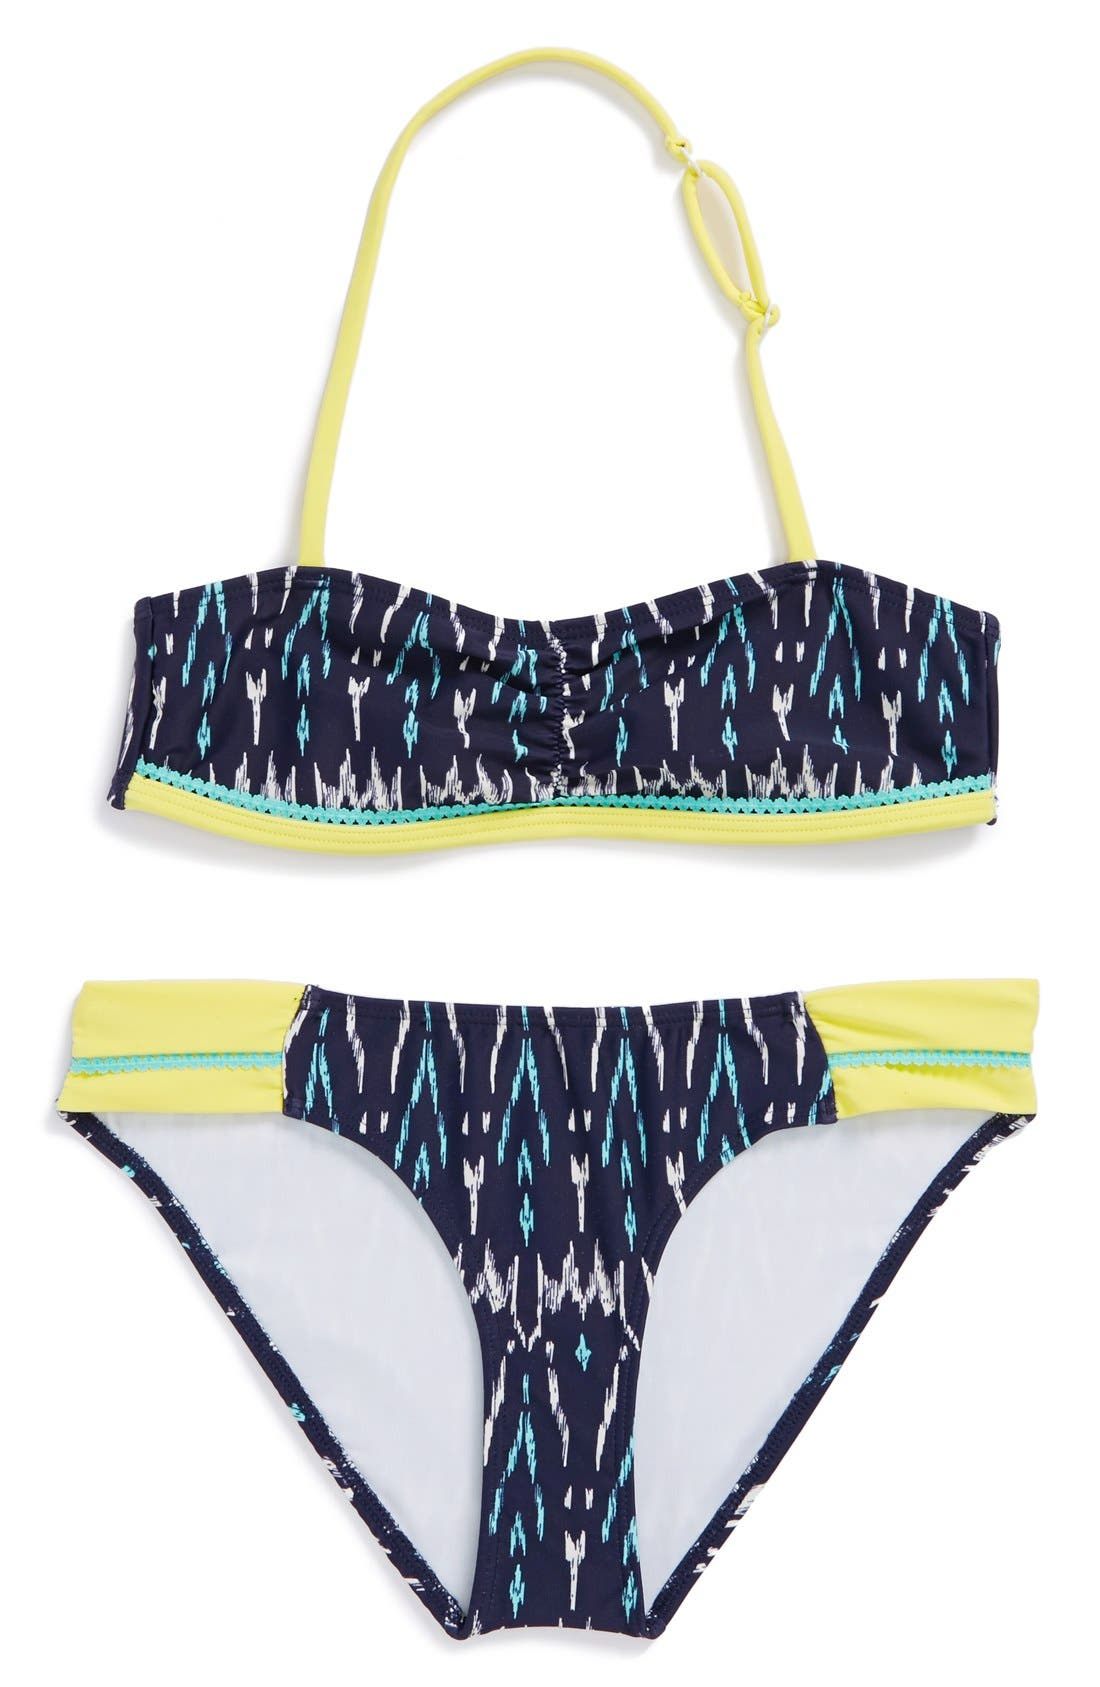 Alternate Image 1 Selected - Tucker + Tate 'Tropical' Two-Piece Swimsuit (Big Girls)